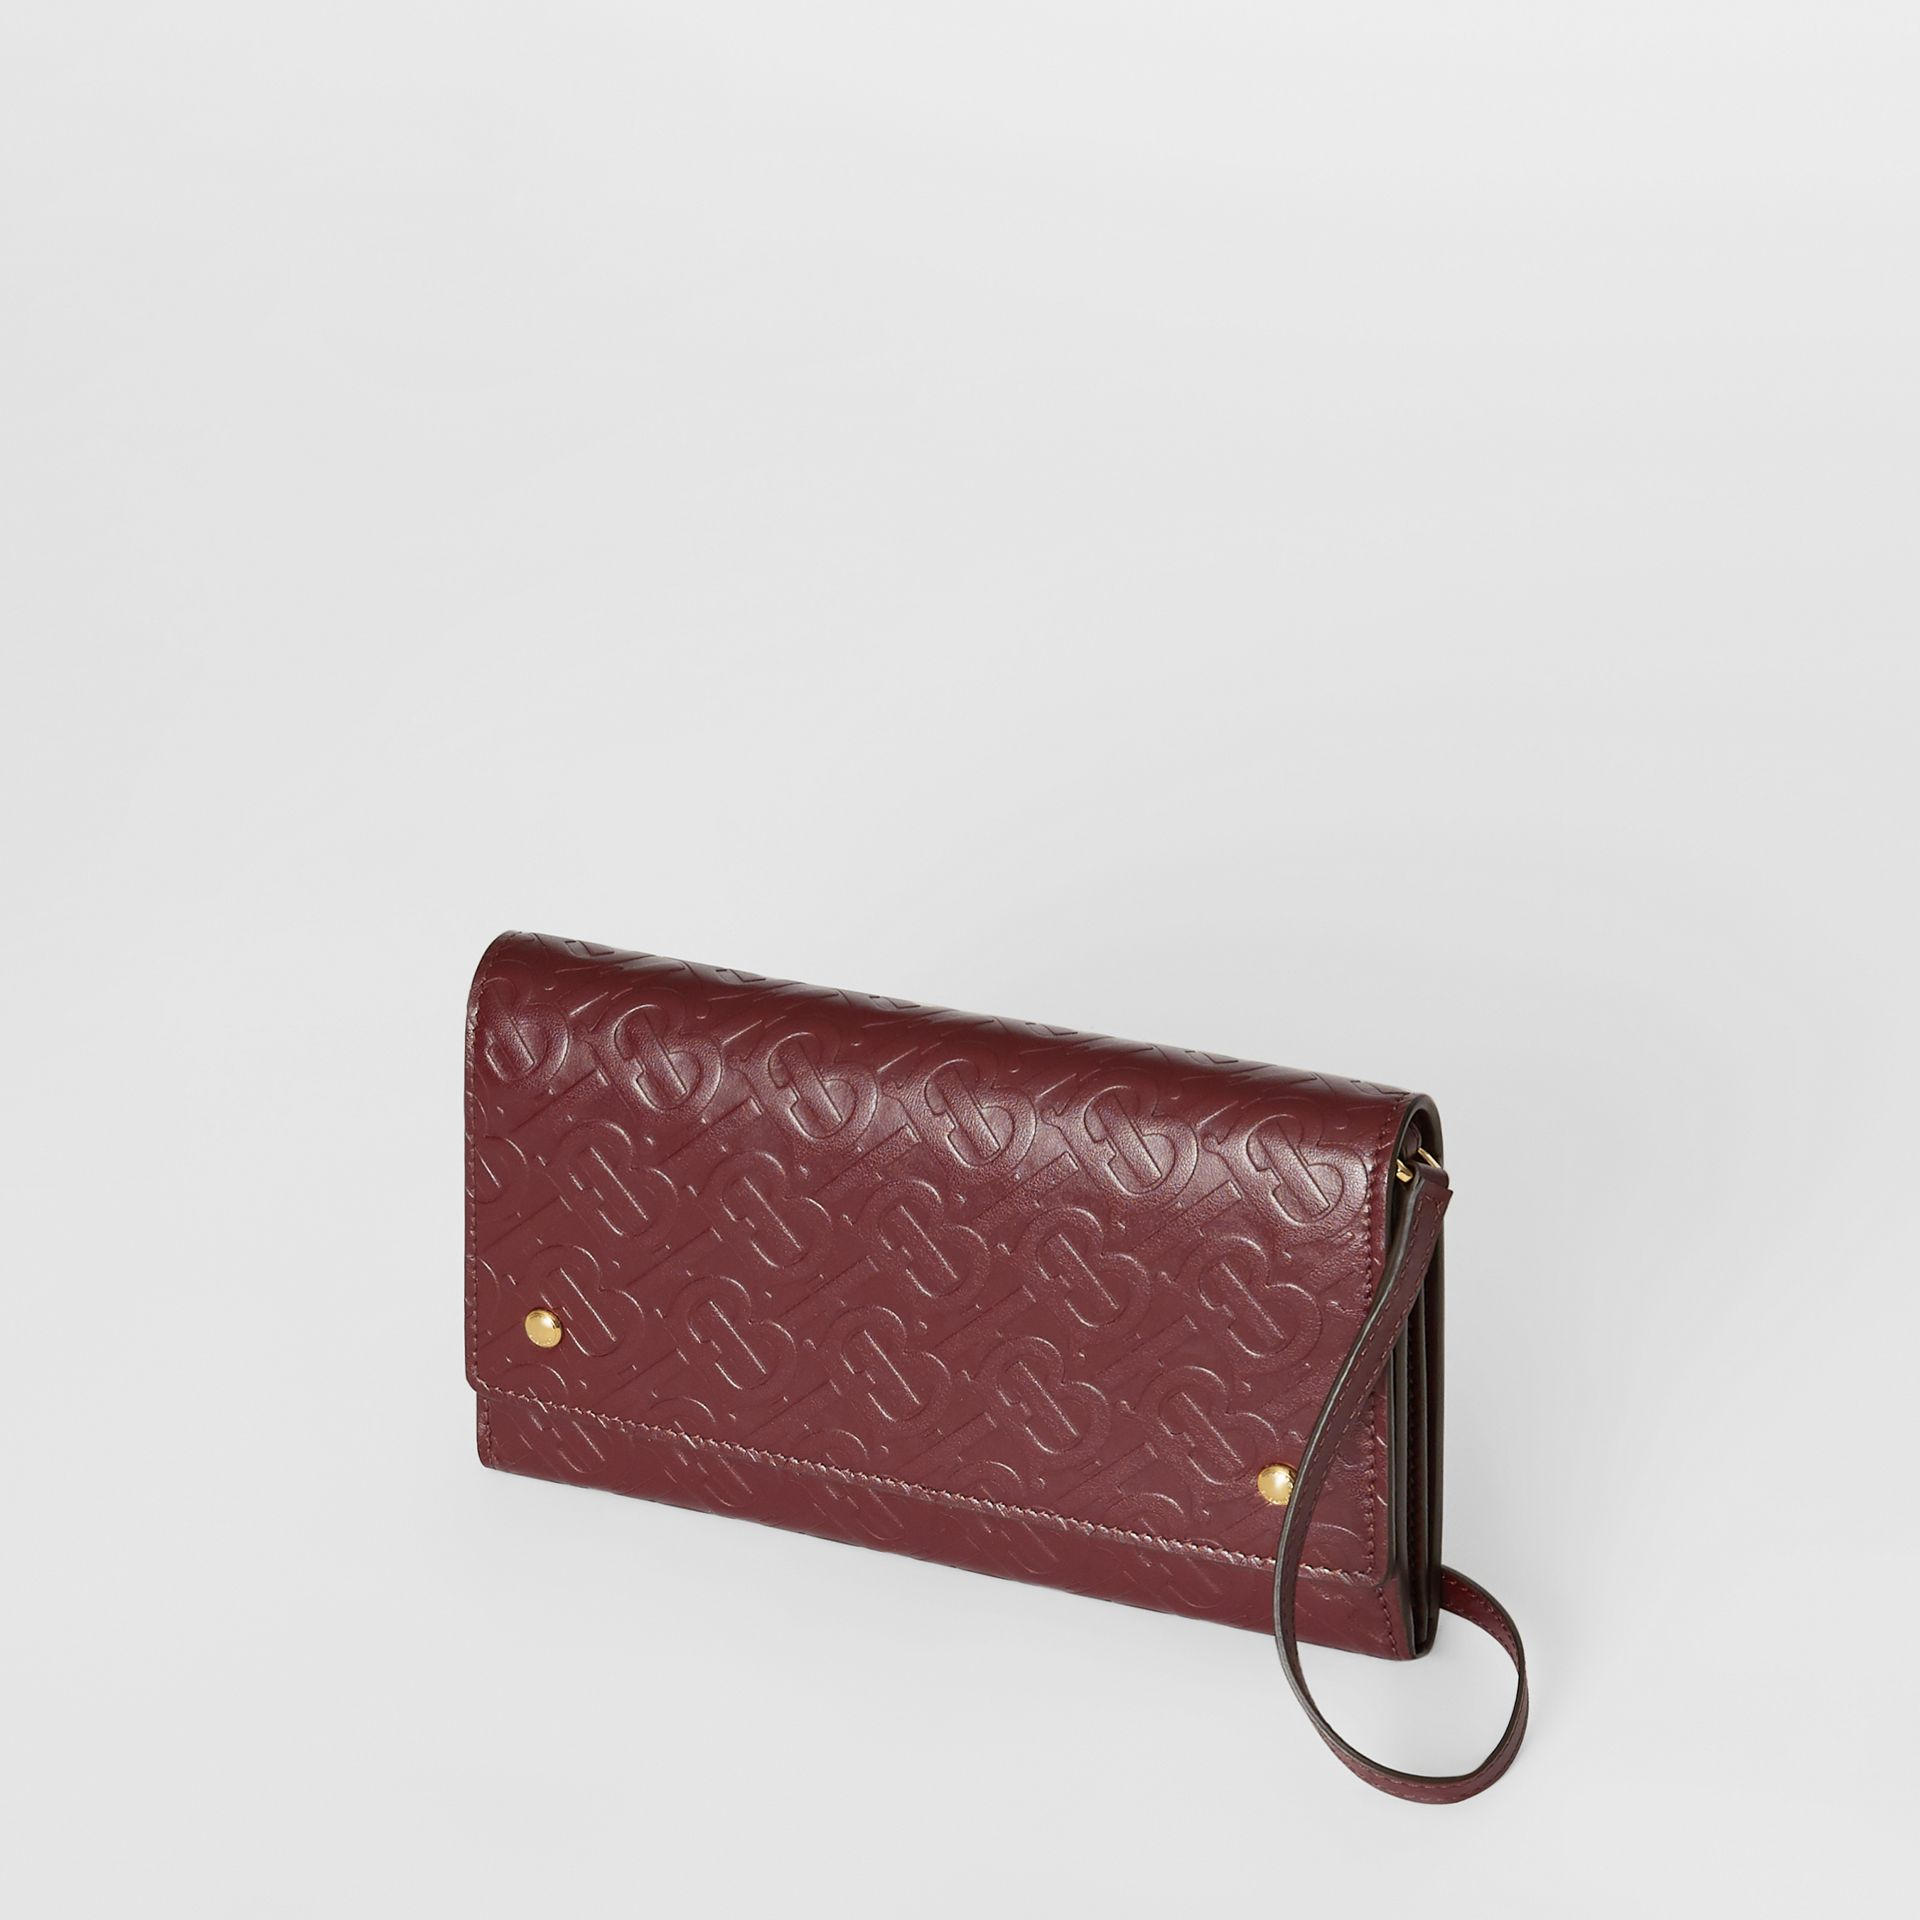 Monogram Leather Wallet with Detachable Strap in Oxblood - Women | Burberry - gallery image 3